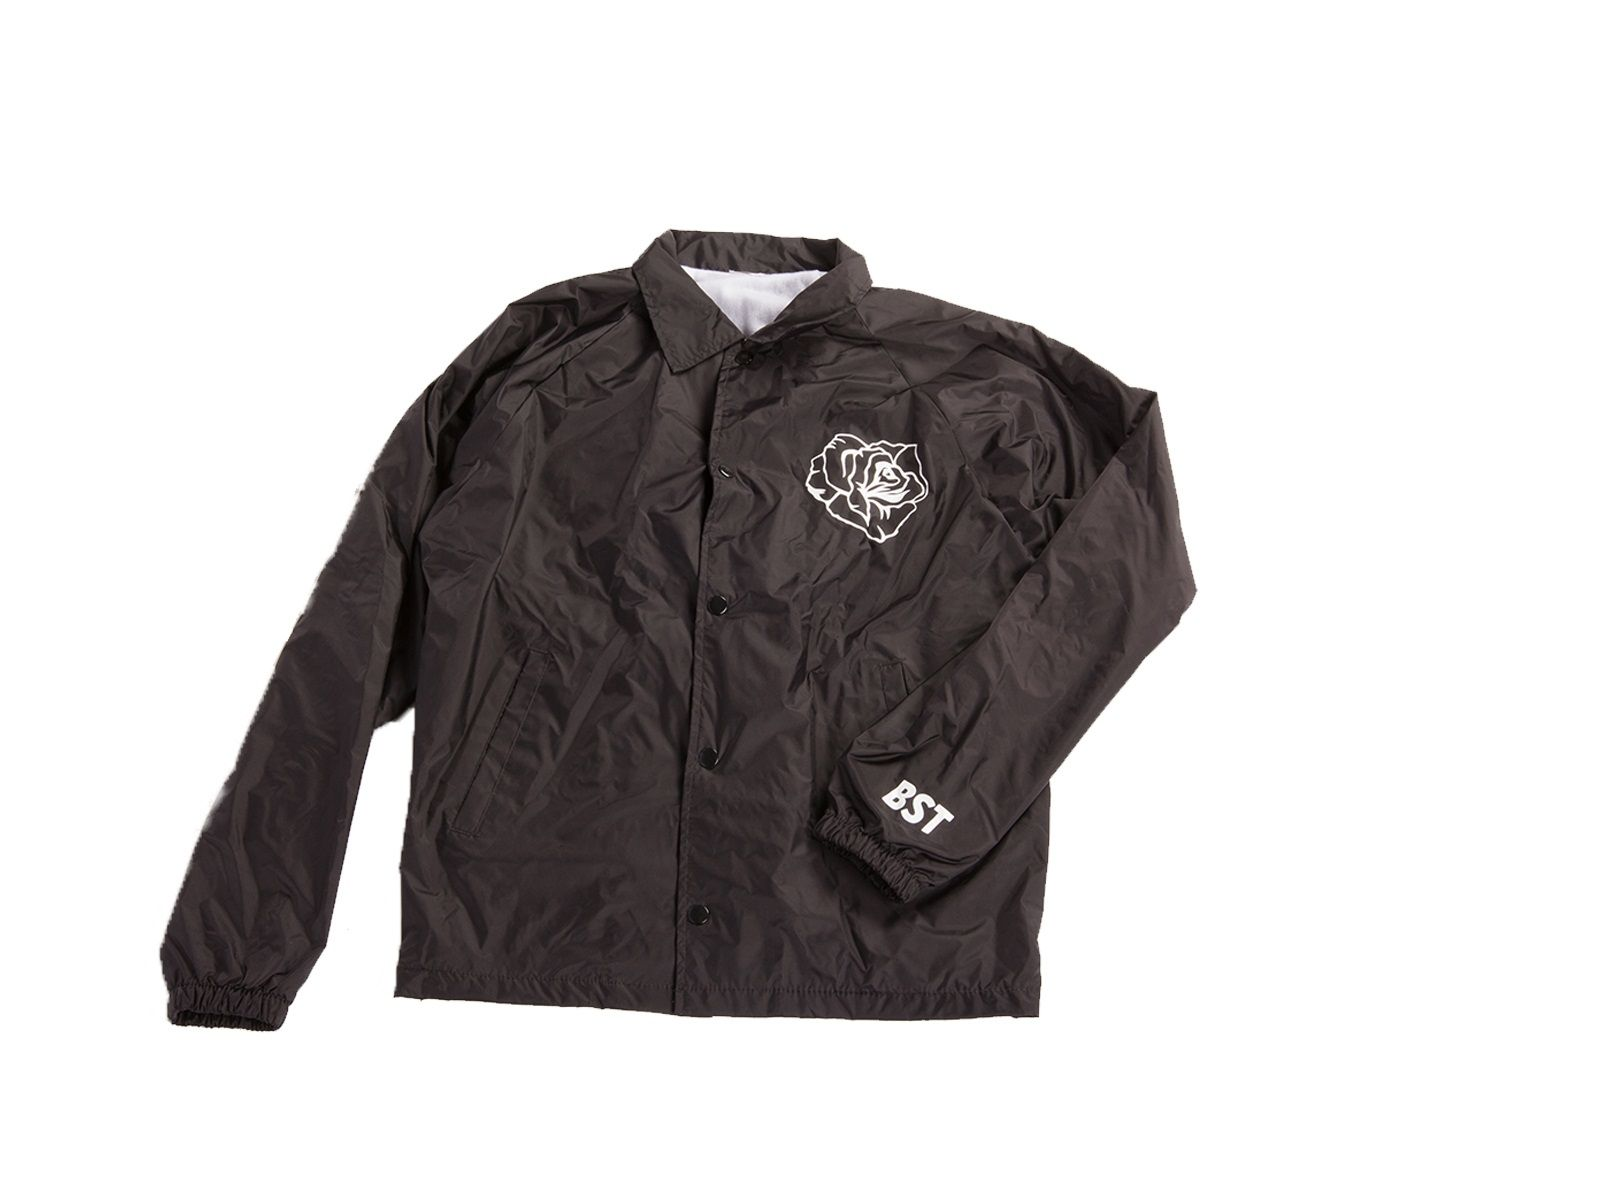 BST Rose Coach Jacket from BST | Urbaner | Jackets, Nike